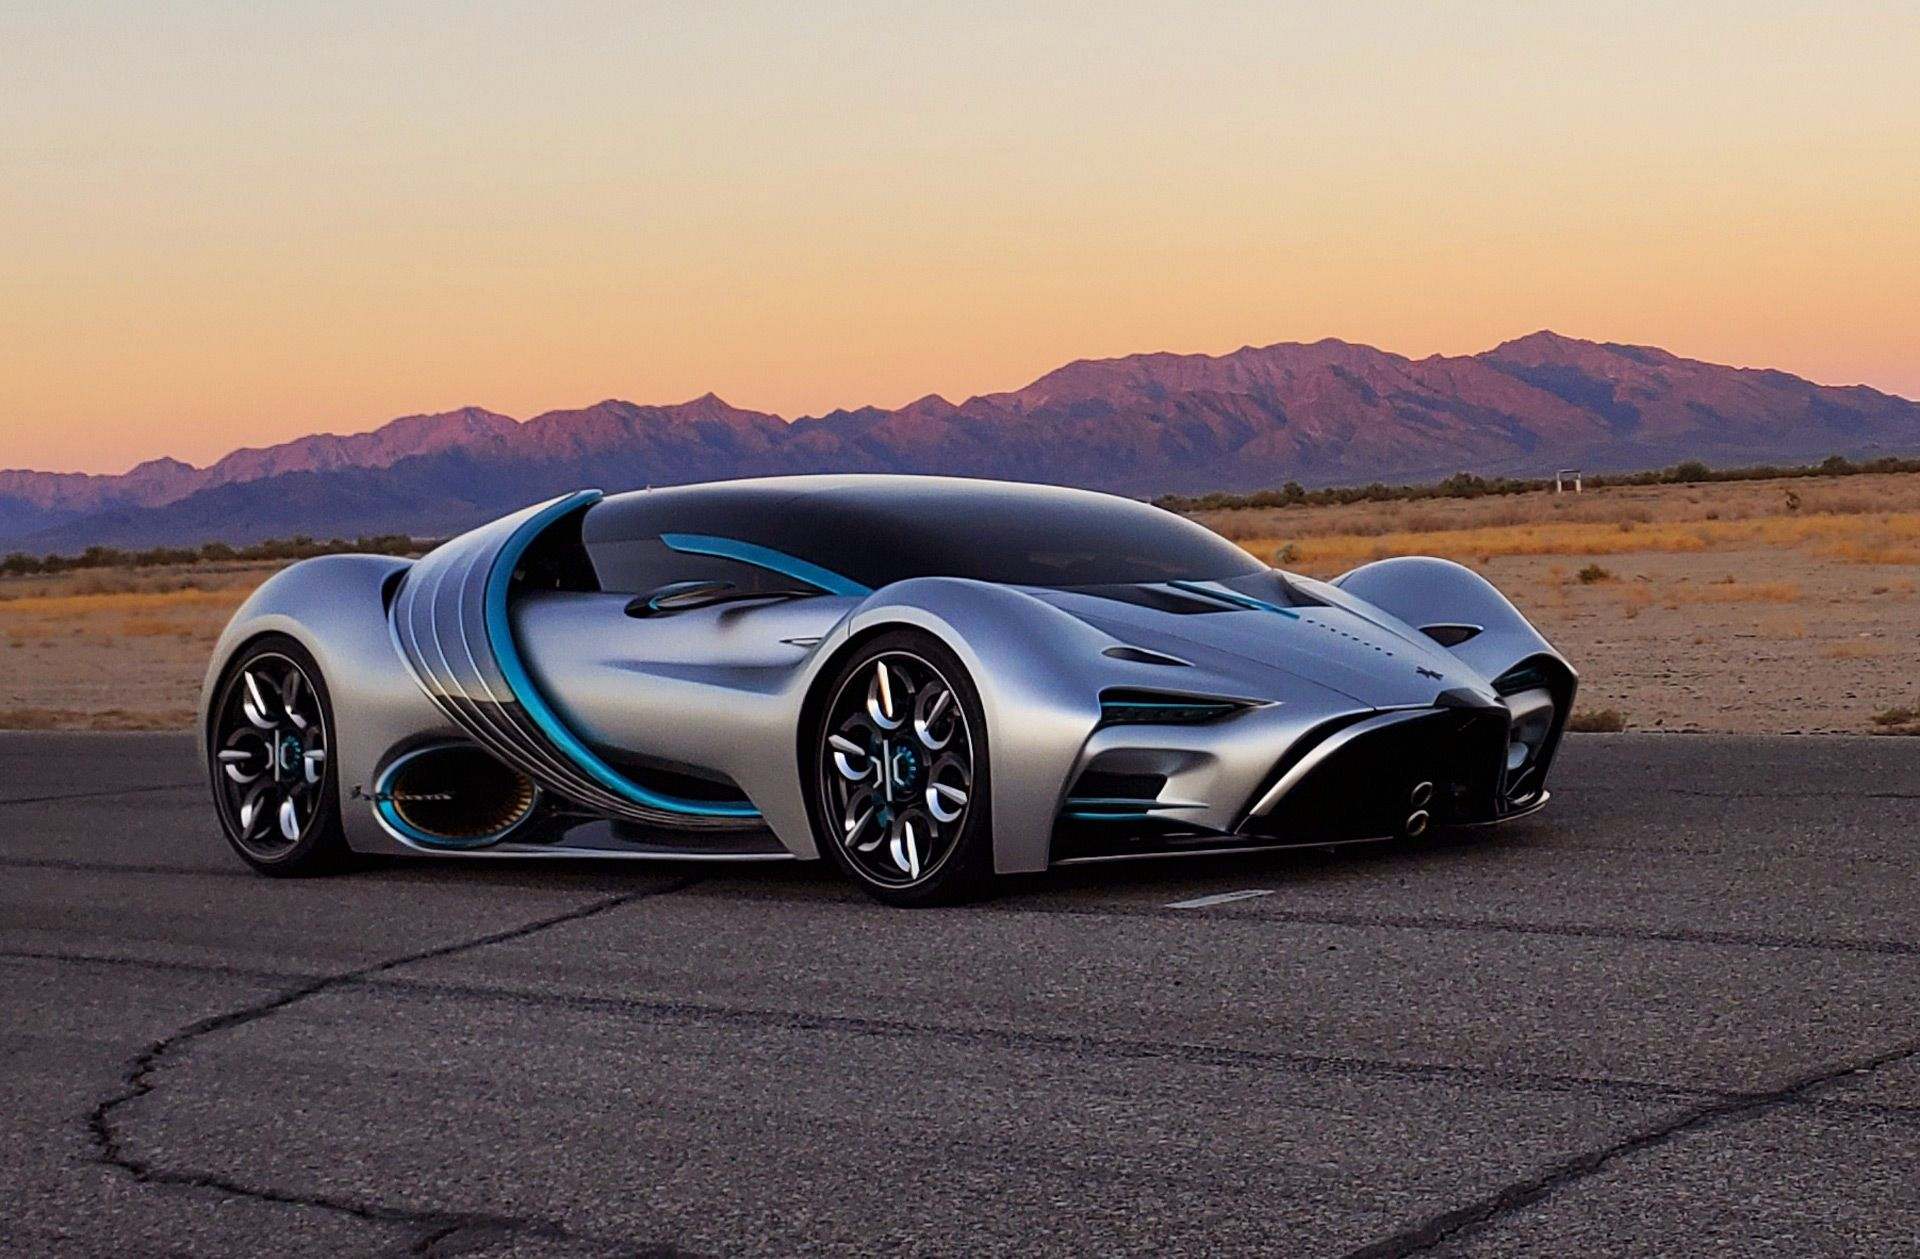 California Firm Hyperion Unveils Xp 1 Hydrogen Supercar In 2020 Super Cars Hydrogen Fuel Cell Fuel Cell